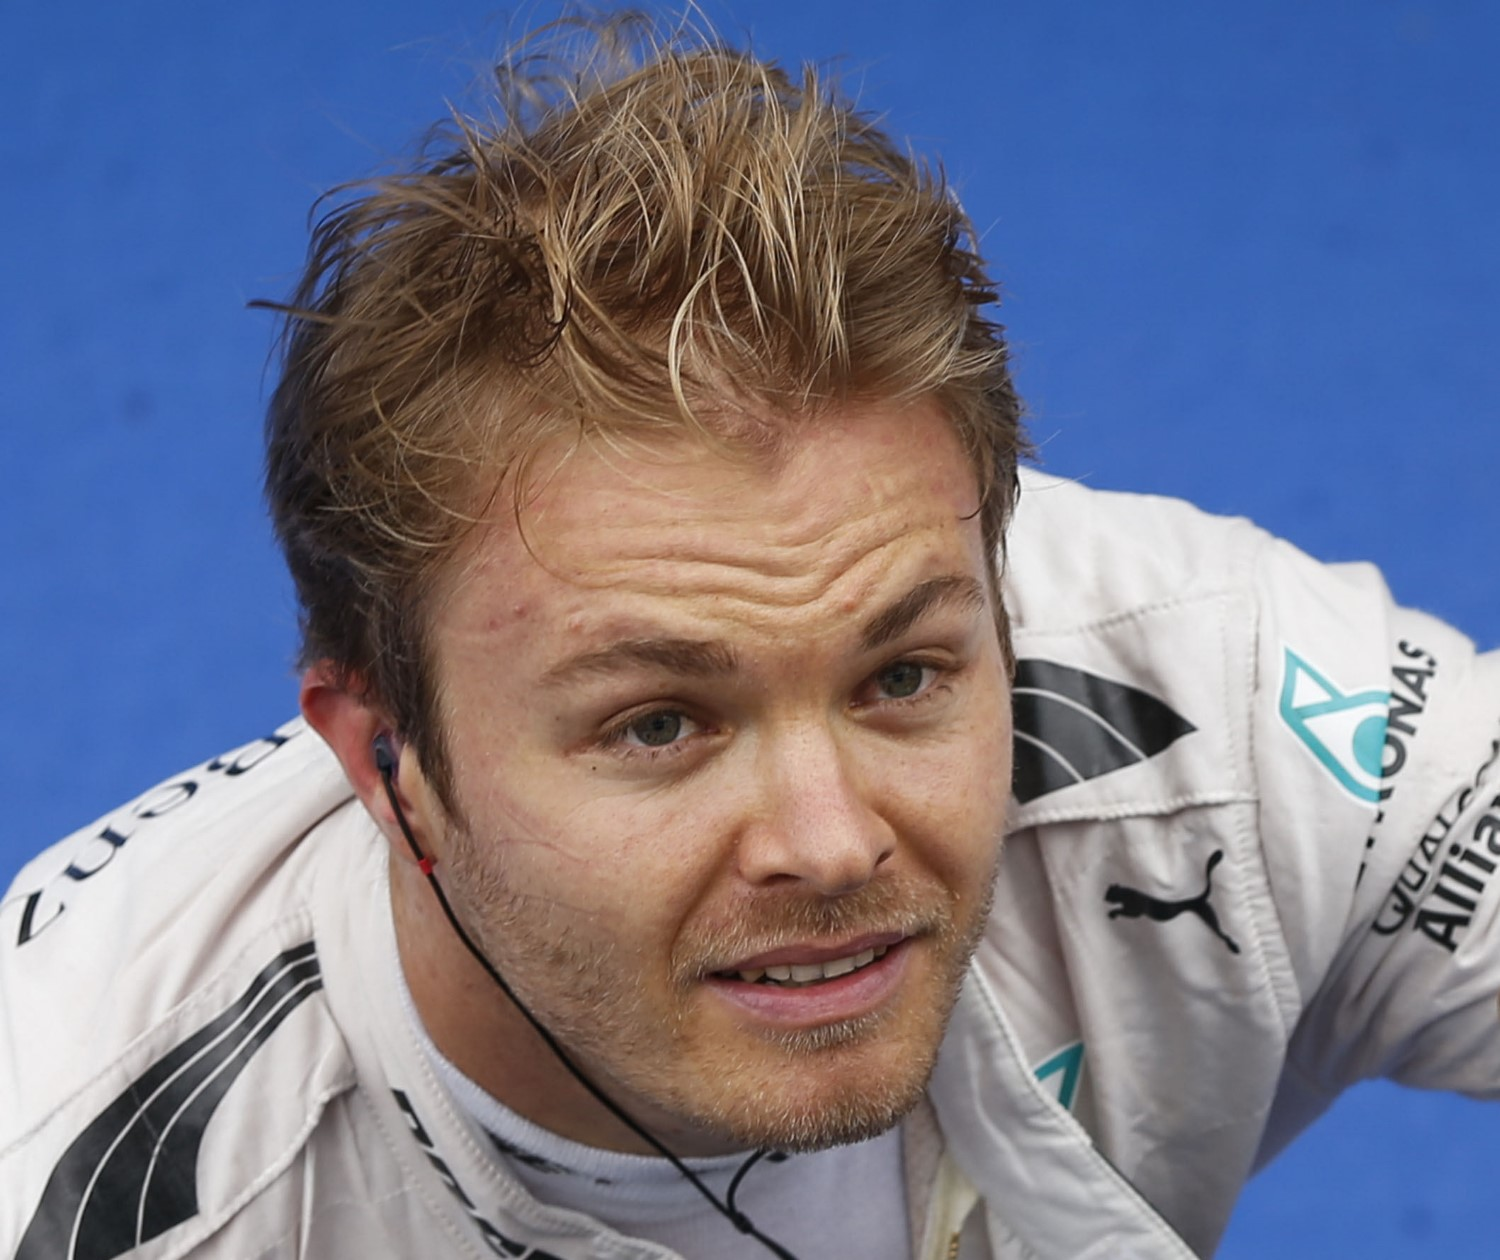 Rosberg happy to stay home and change diapers